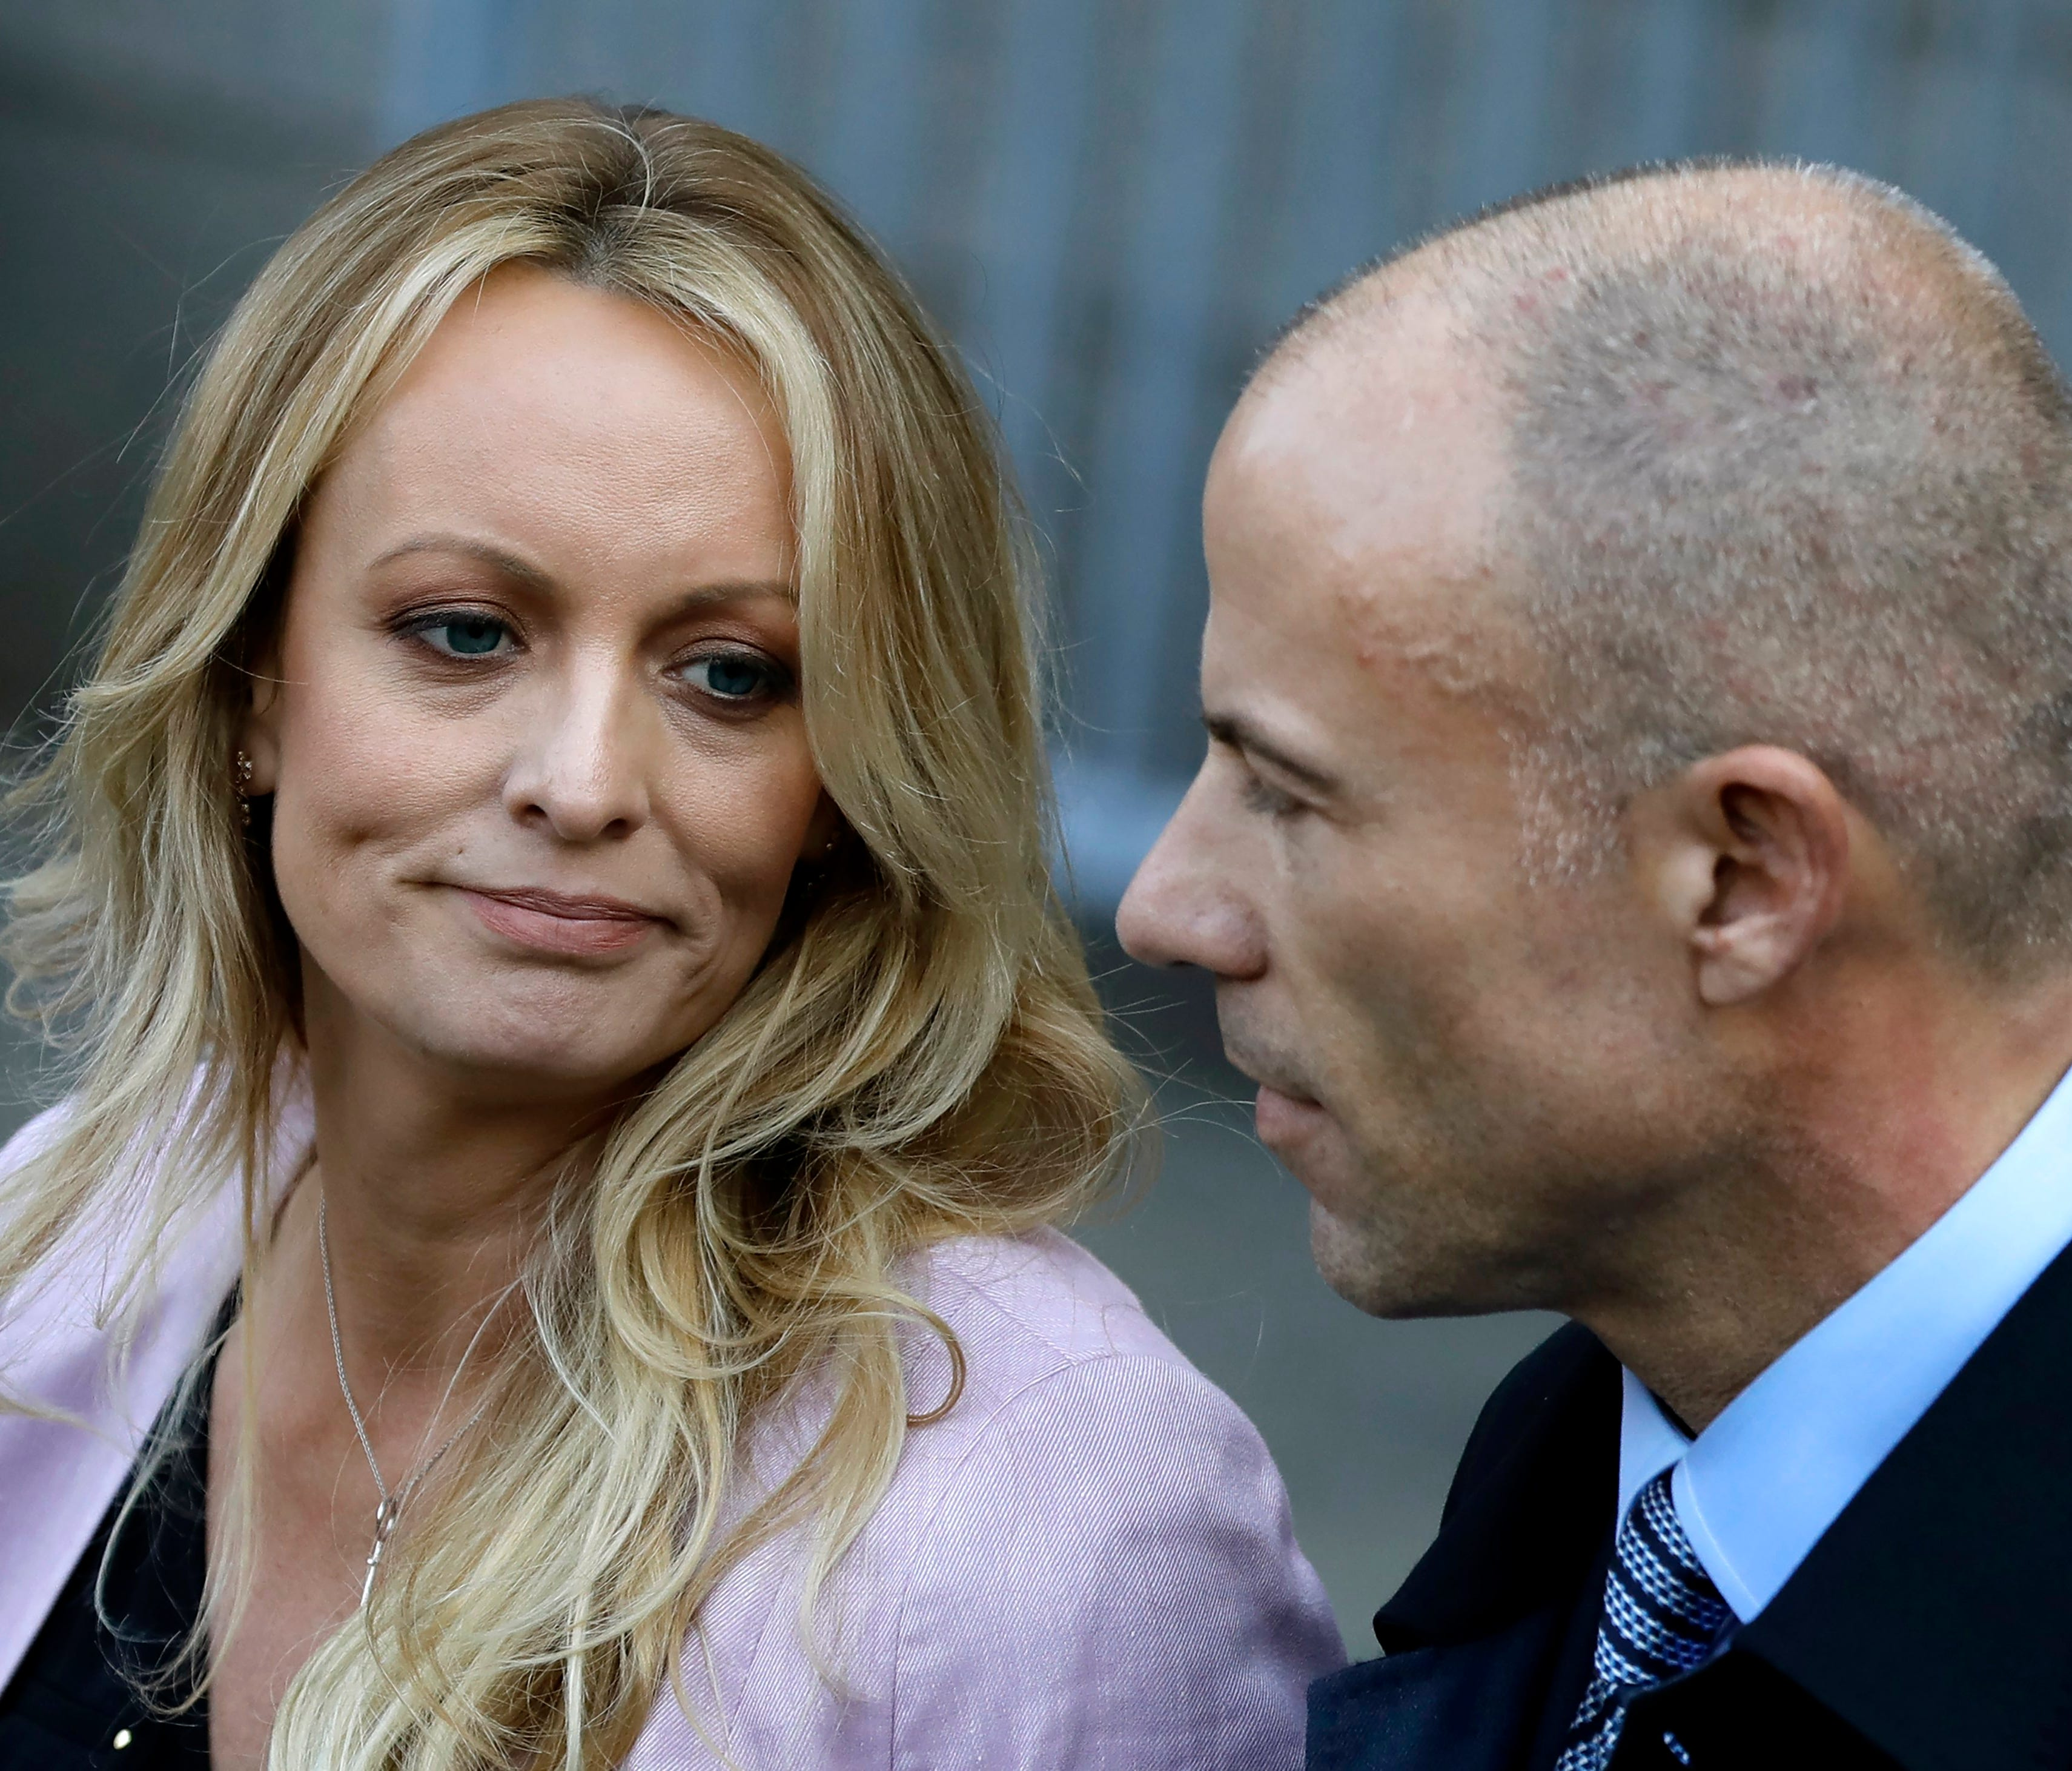 Stormy Daniels, also known as Stephanie Clifford, speaks to reporters with her attorney Michael Avenatti outside of federal court in New York City April 16.